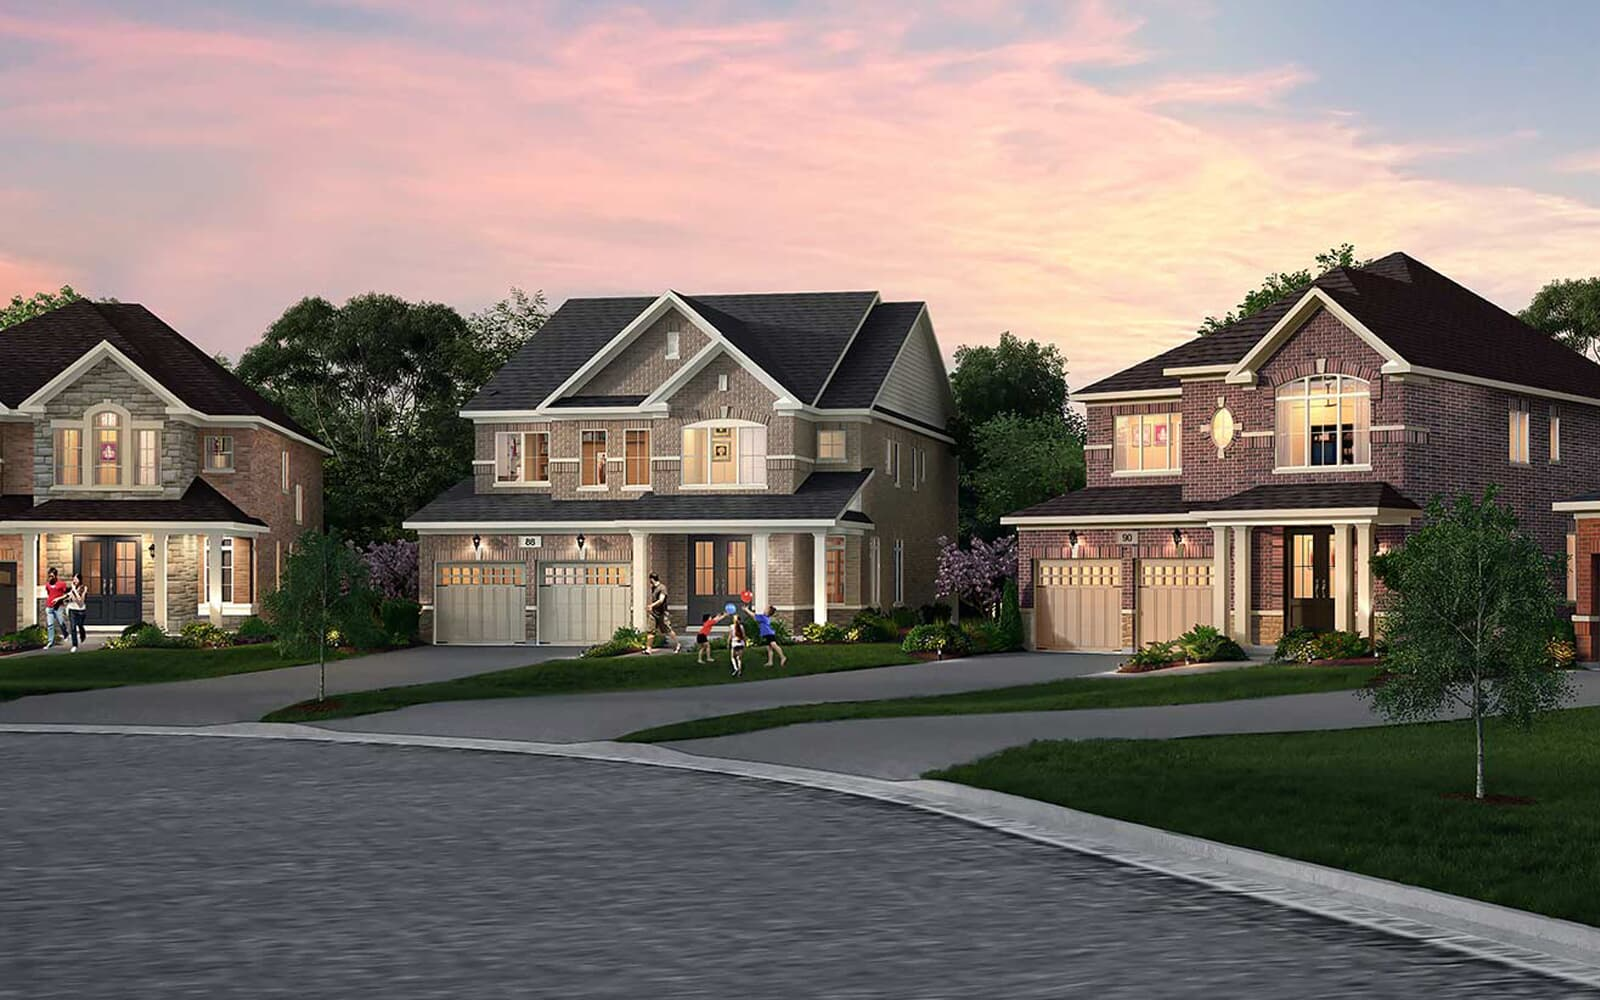 Streetscape-Caledon East-Pathways-Brookfield-Residential